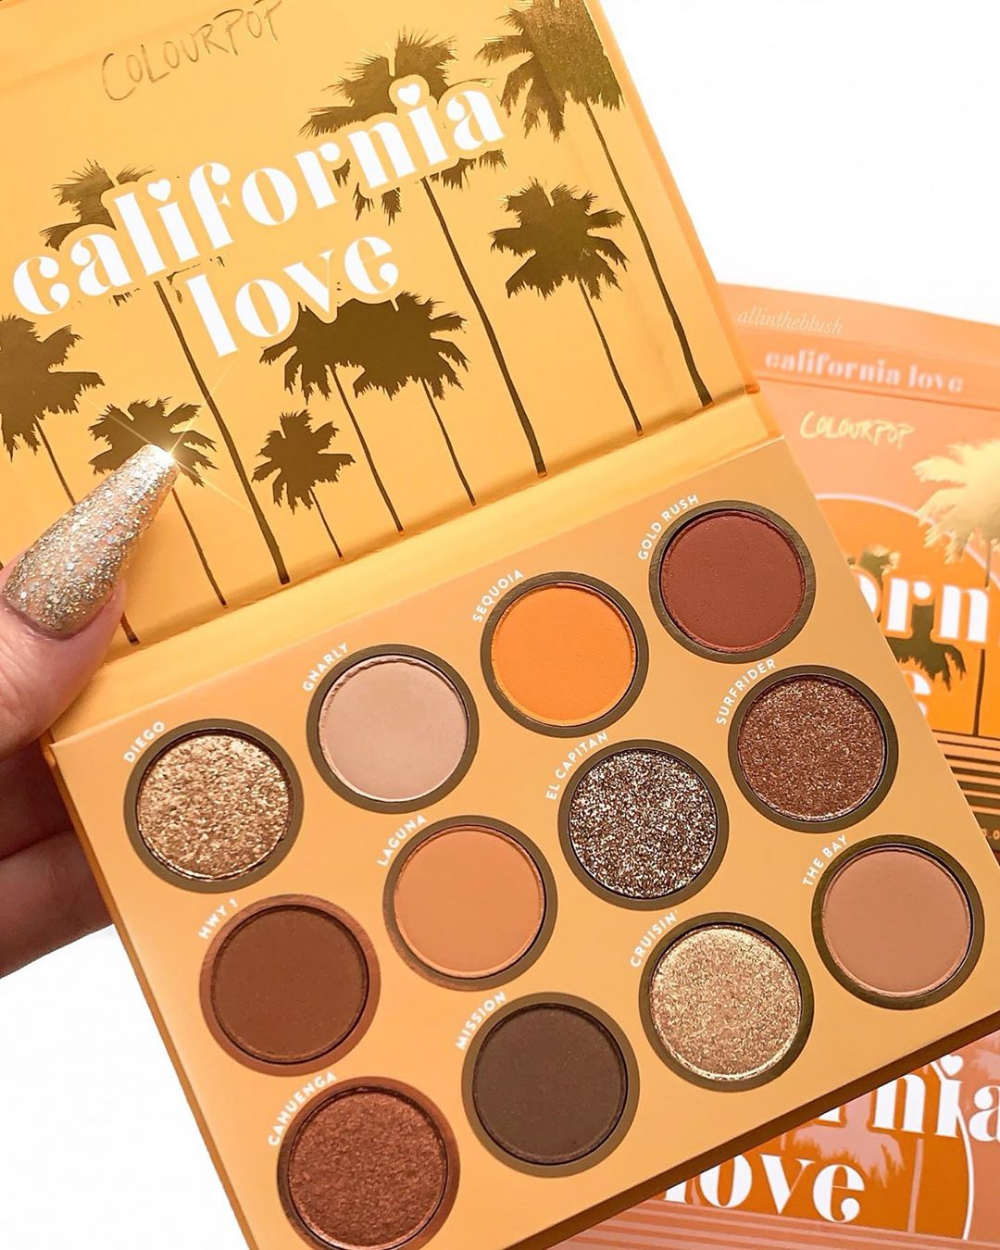 California Love Eyeshadow Palette : california, eyeshadow, palette, Colourpopcosmetics, Colourpop, California, Eyeshadow, Palette, @allintheblush, Beauty, Makeup,, Makeup, Pallets